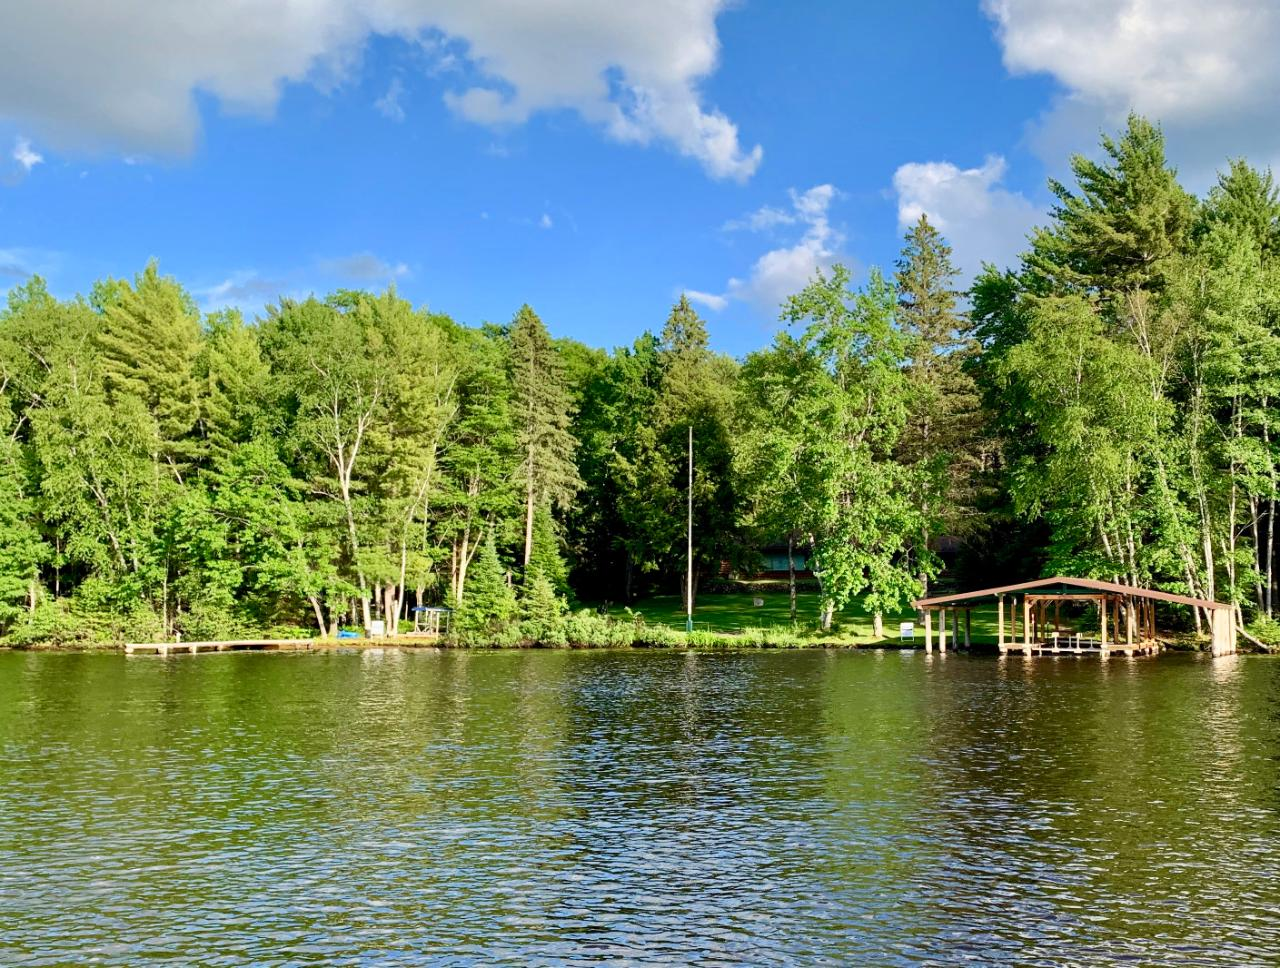 Luxurious log home on the Eagle River Chain. The log home sits on 9.83 very private acres. It also has over 249' of level sandy frontage on Voyager Lake. The home offers 5 bedrooms and 4 baths and over 3200 sq. ft. The home is very Northwoods and is done from floor to ceiling in gorgeous native woods. The highlight of the living room is a stunning curved stone fireplace! The home has two spacious living areas. The one level ranch offers a level lot and single level living. The parcel offers an attached garage and a huge 48' x 40' heated detached garage that also offers additional storage in the upper level. Other features include two furnaces, central air conditioning, backup generator, two pier systems (one with a 3-slip boat shelter with lift), in-ground irrigation system, a long private paved drive and exquisite landscaping.